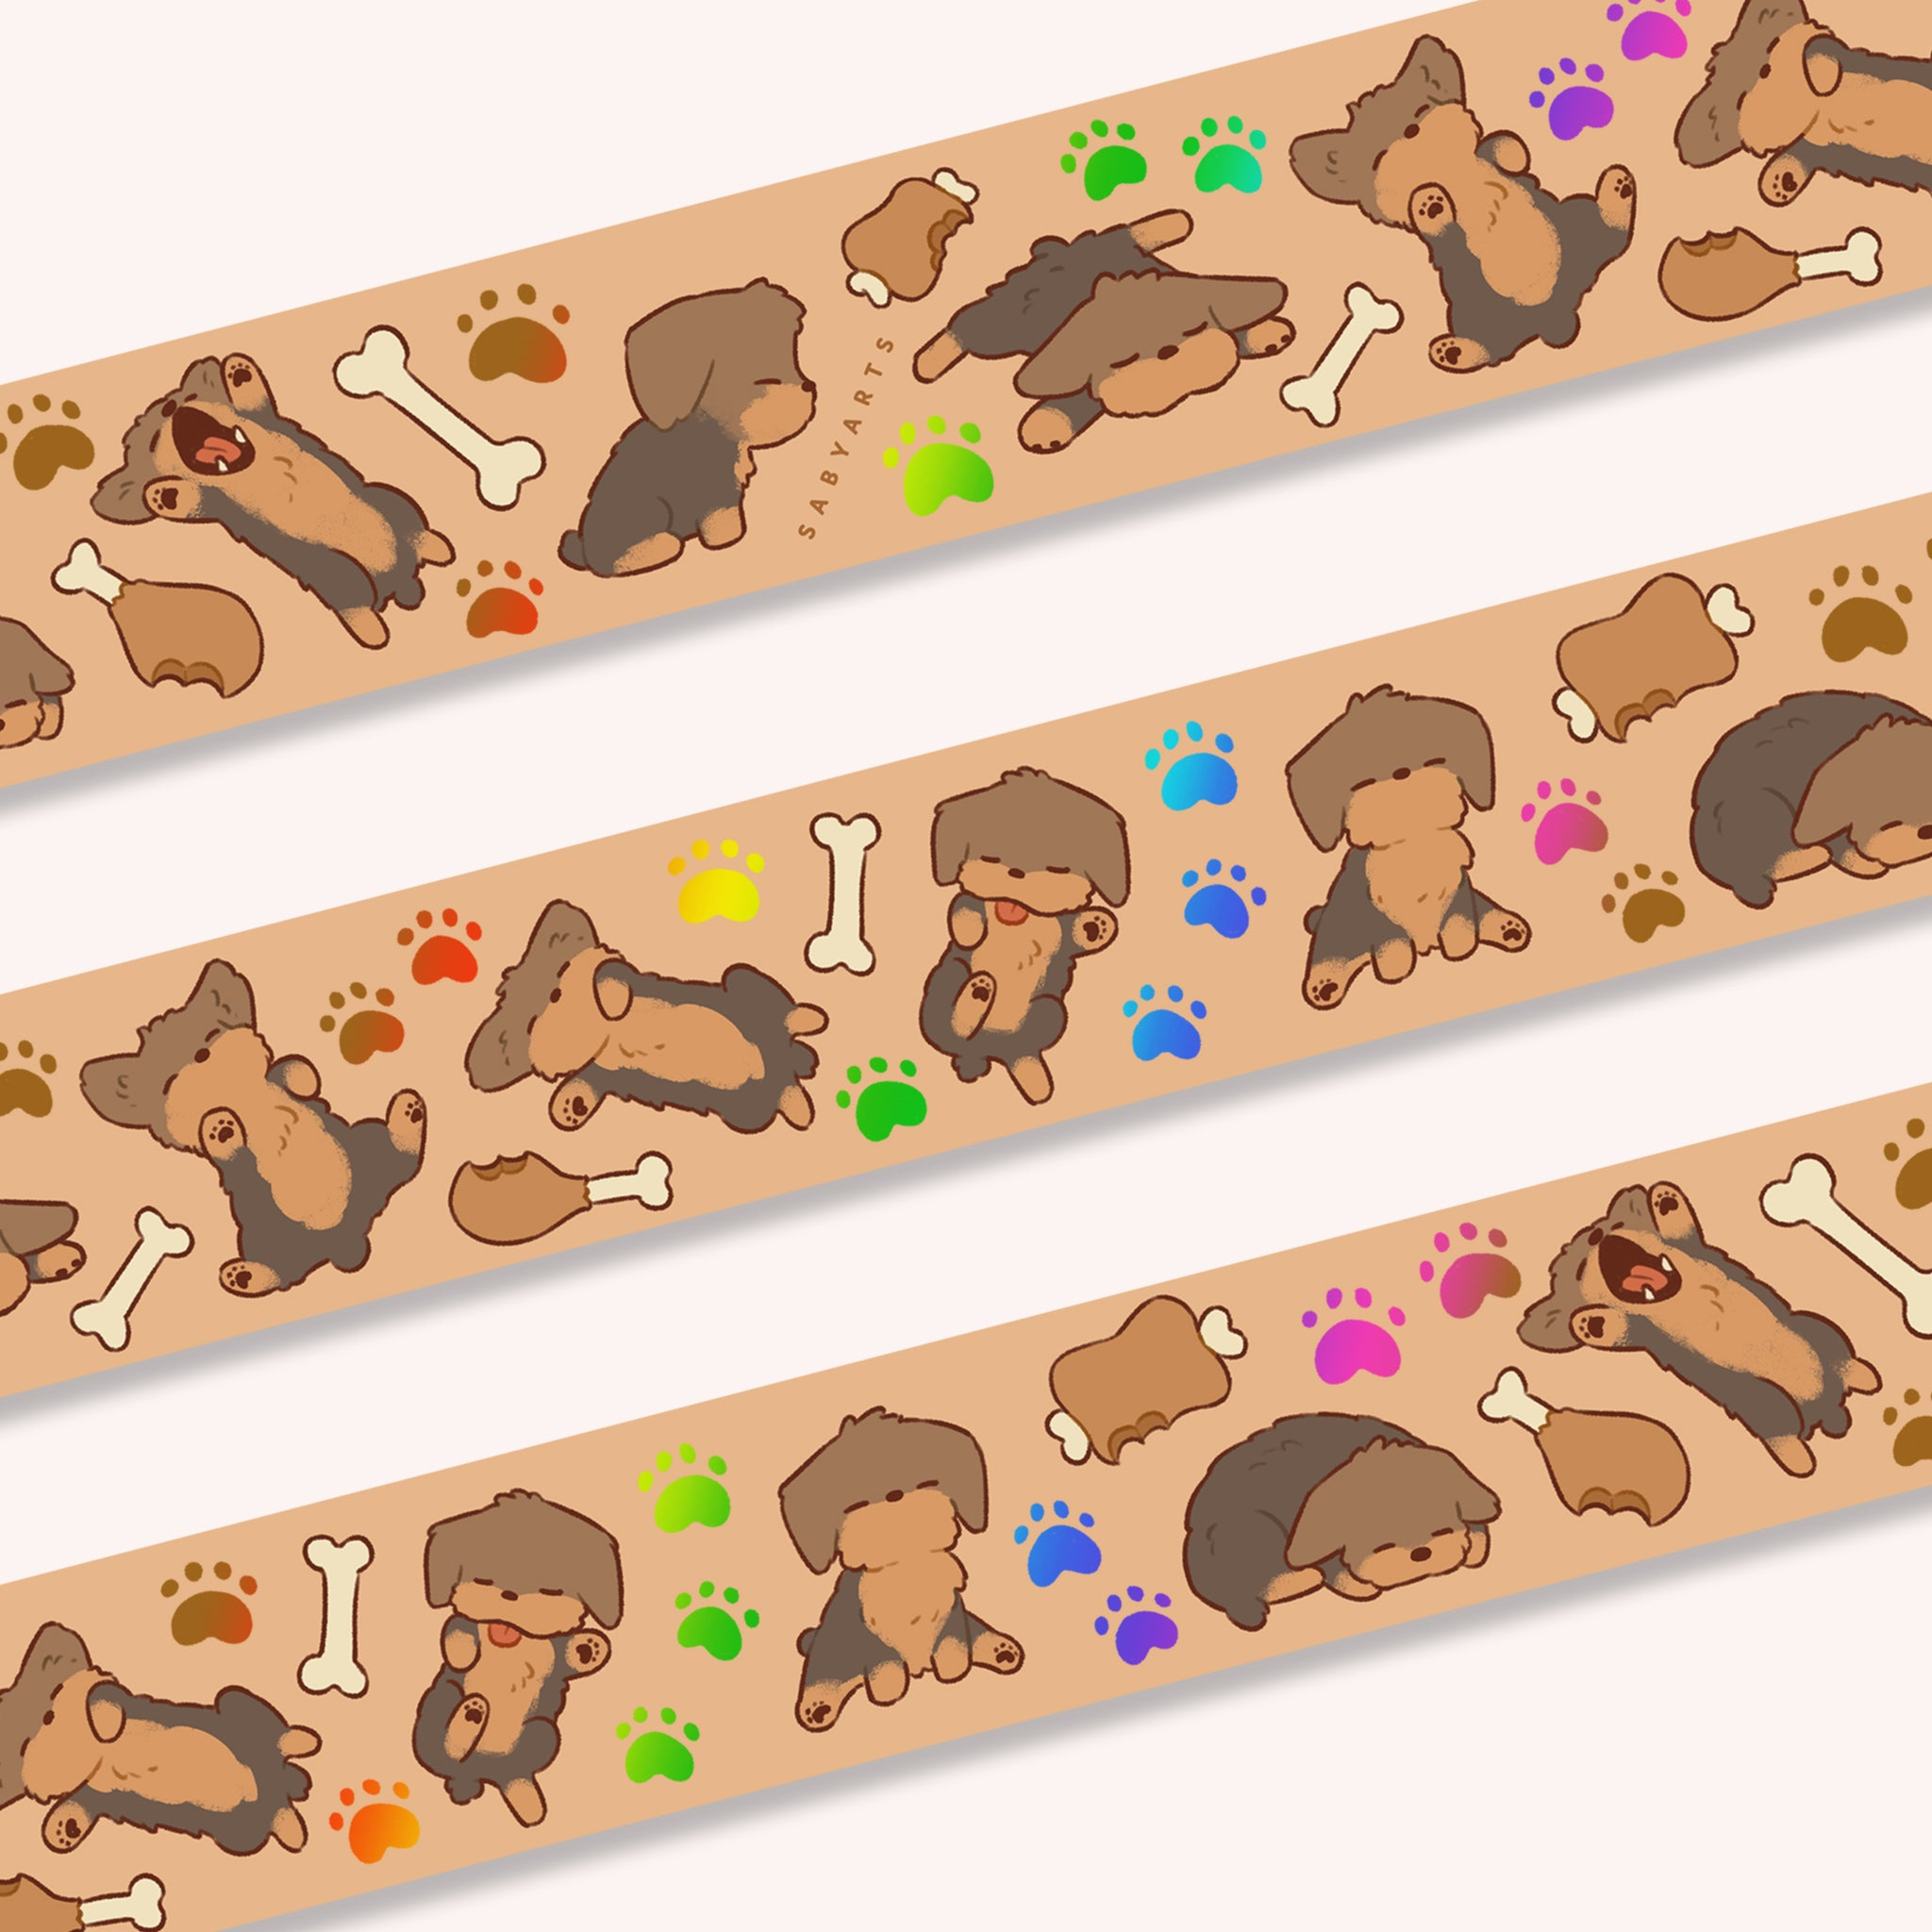 Sleepy Buddy Washi Tape